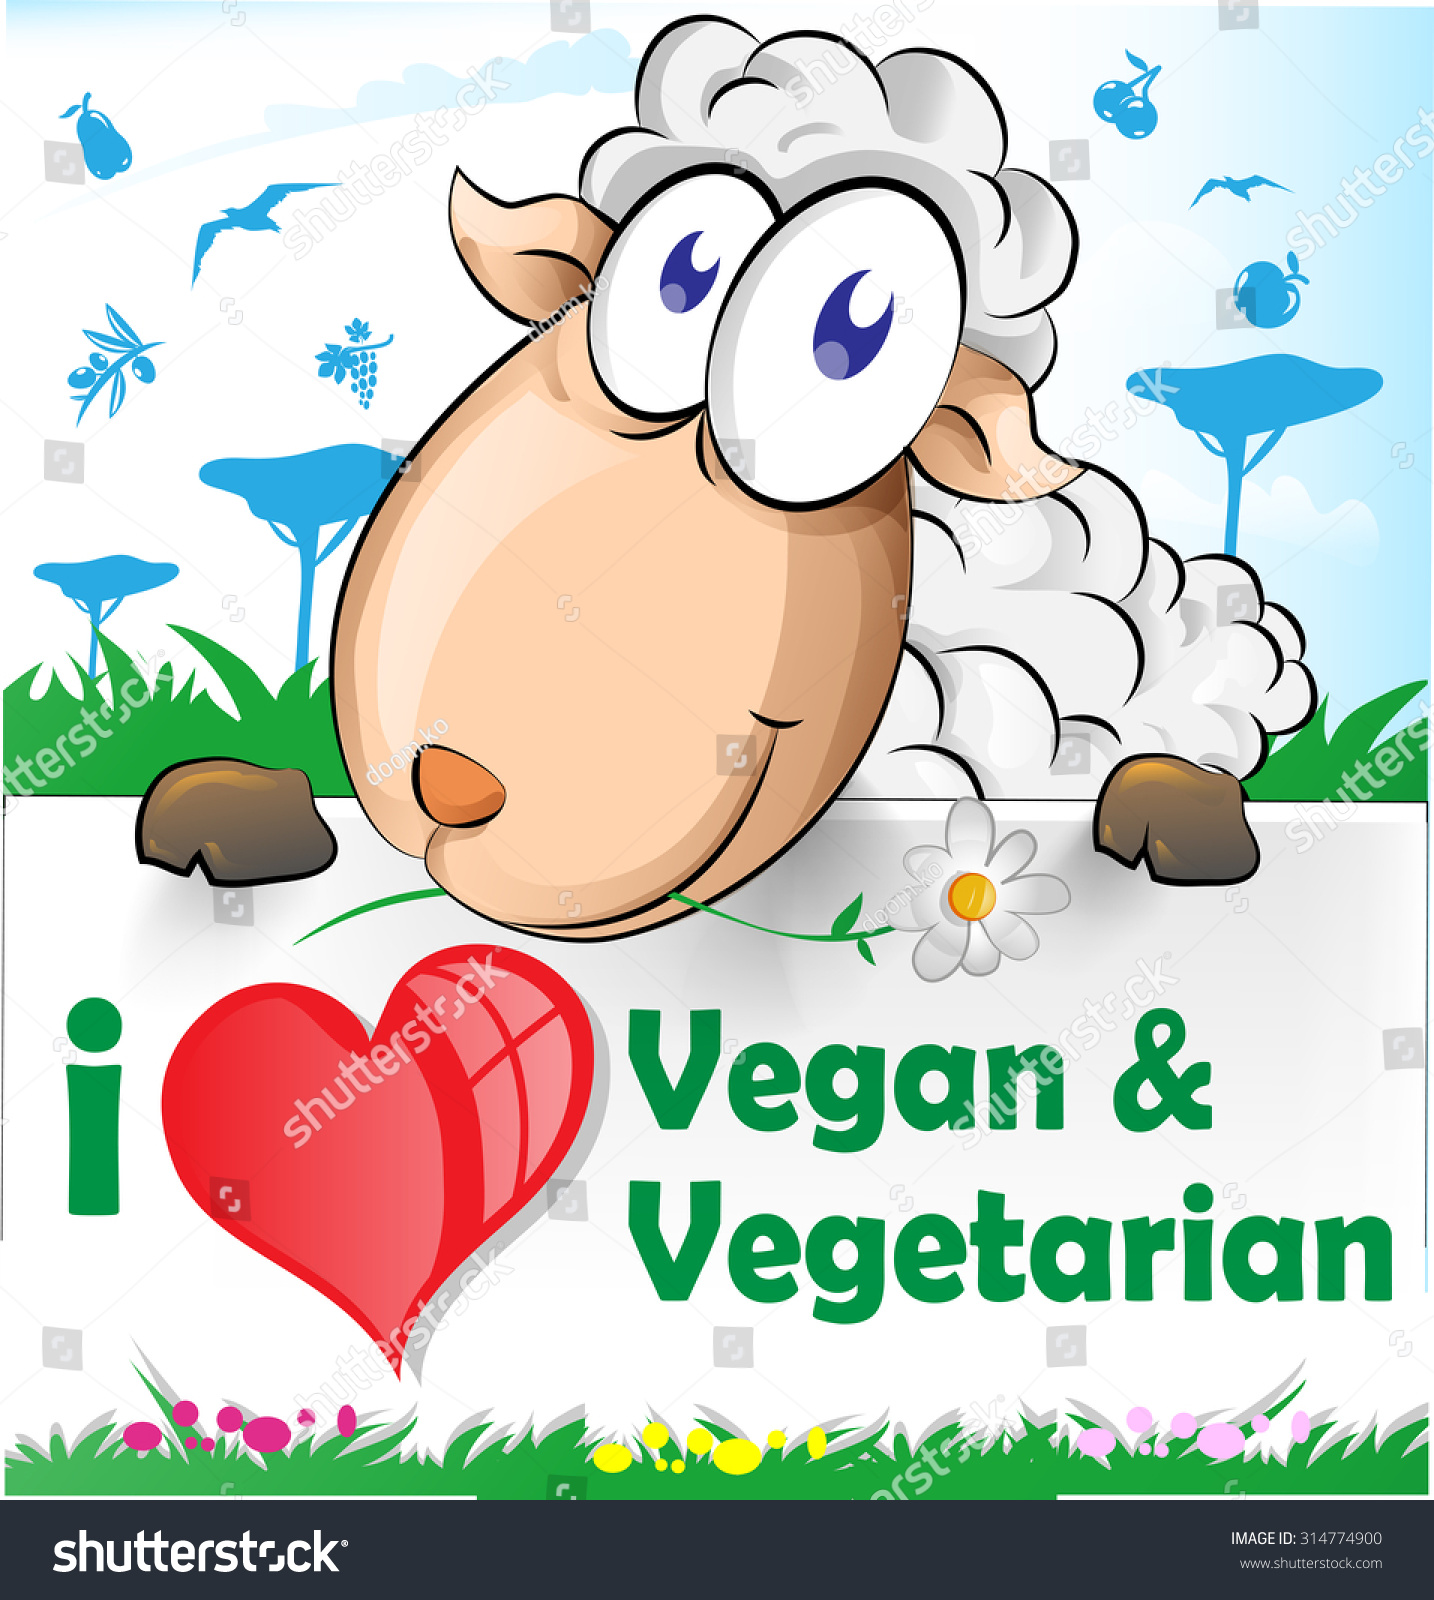 Sheep Cartoon Vegetarian Vegan Banner Stock Vector Royalty Free 314774900